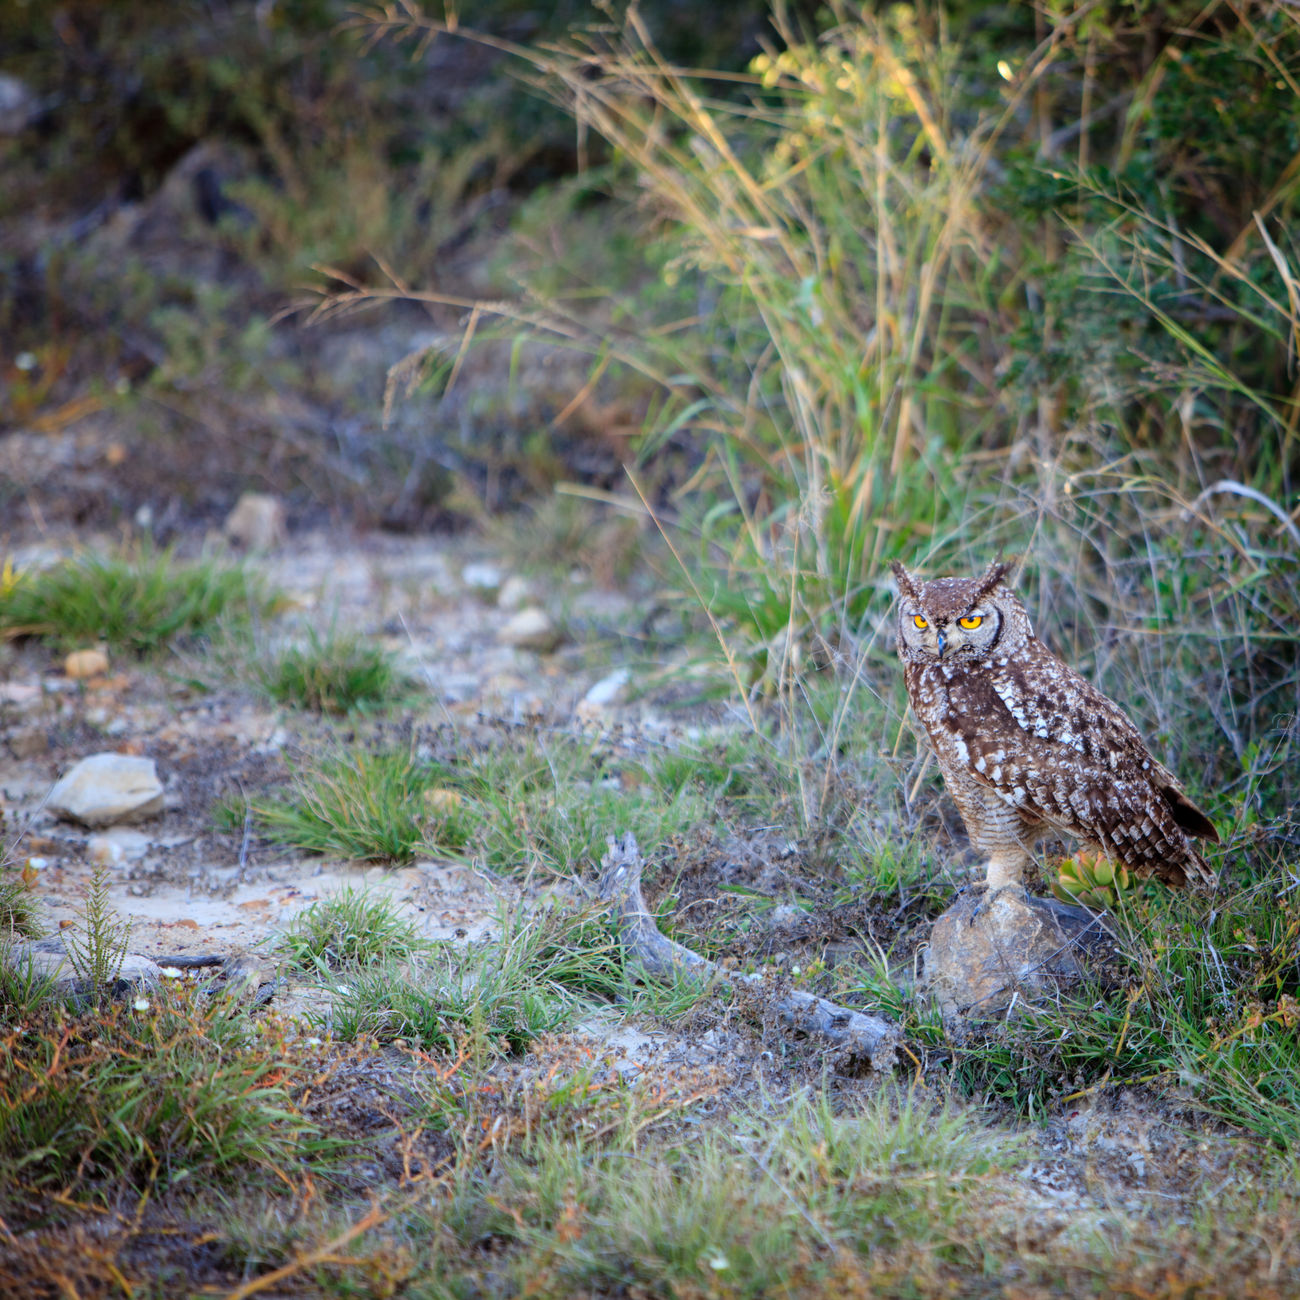 Owl camouflaged at dusk South Africa Addo Animal Themes Animal Wildlife Animals In The Wild Bird Bird Of Prey Camouflage Day Eastern Cape Field Grass Nature No People One Animal Outdoors Owl South Africa